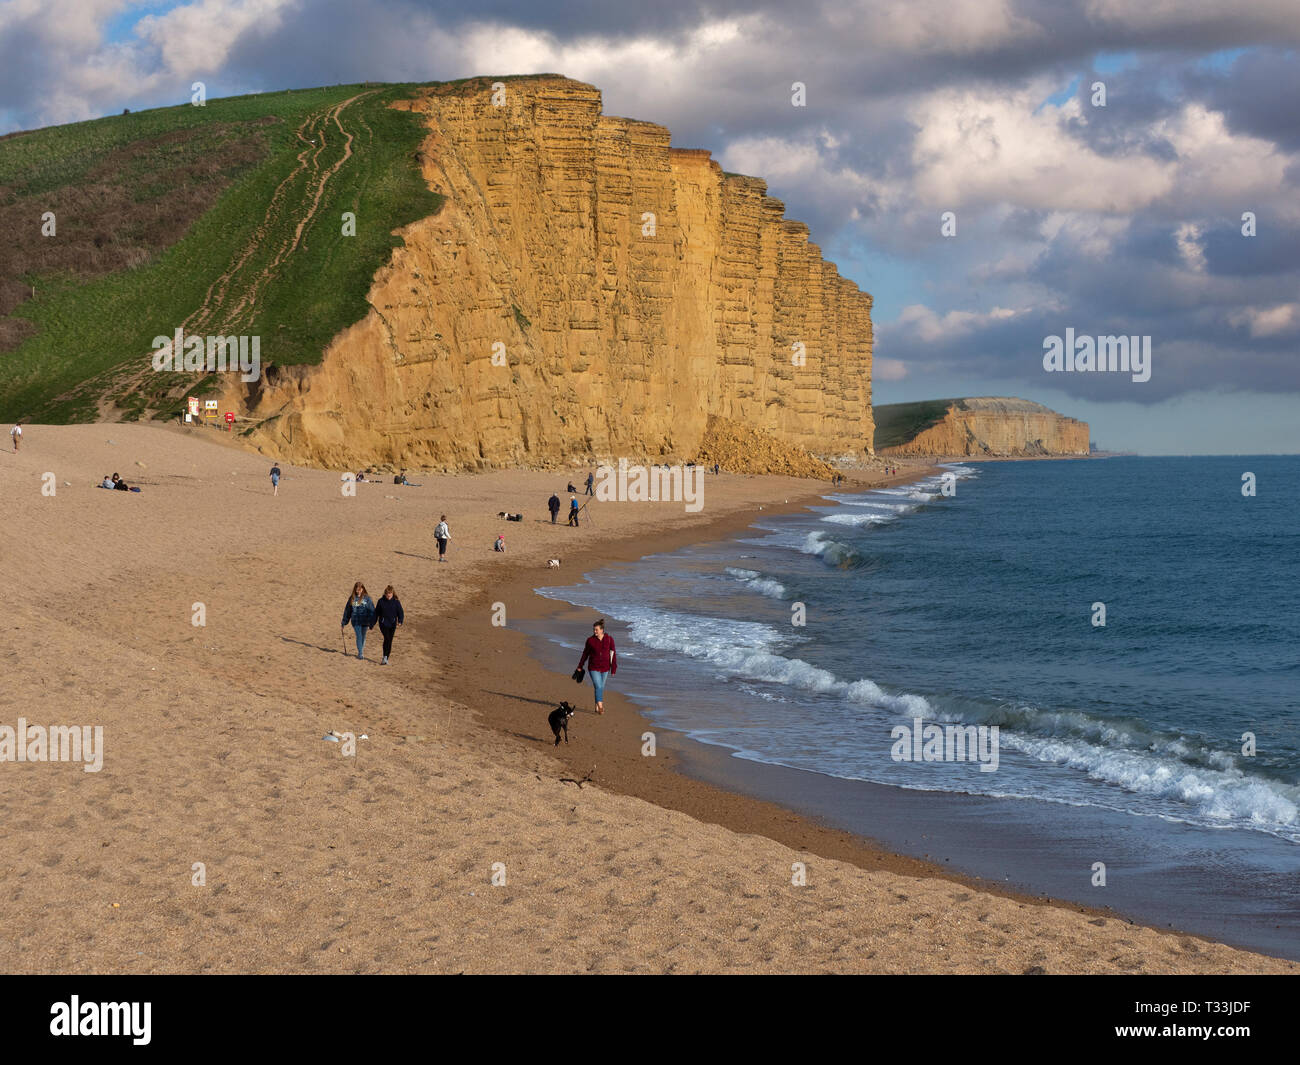 Westbay on the Jurassic Coast  in Dorset southern England - Stock Image